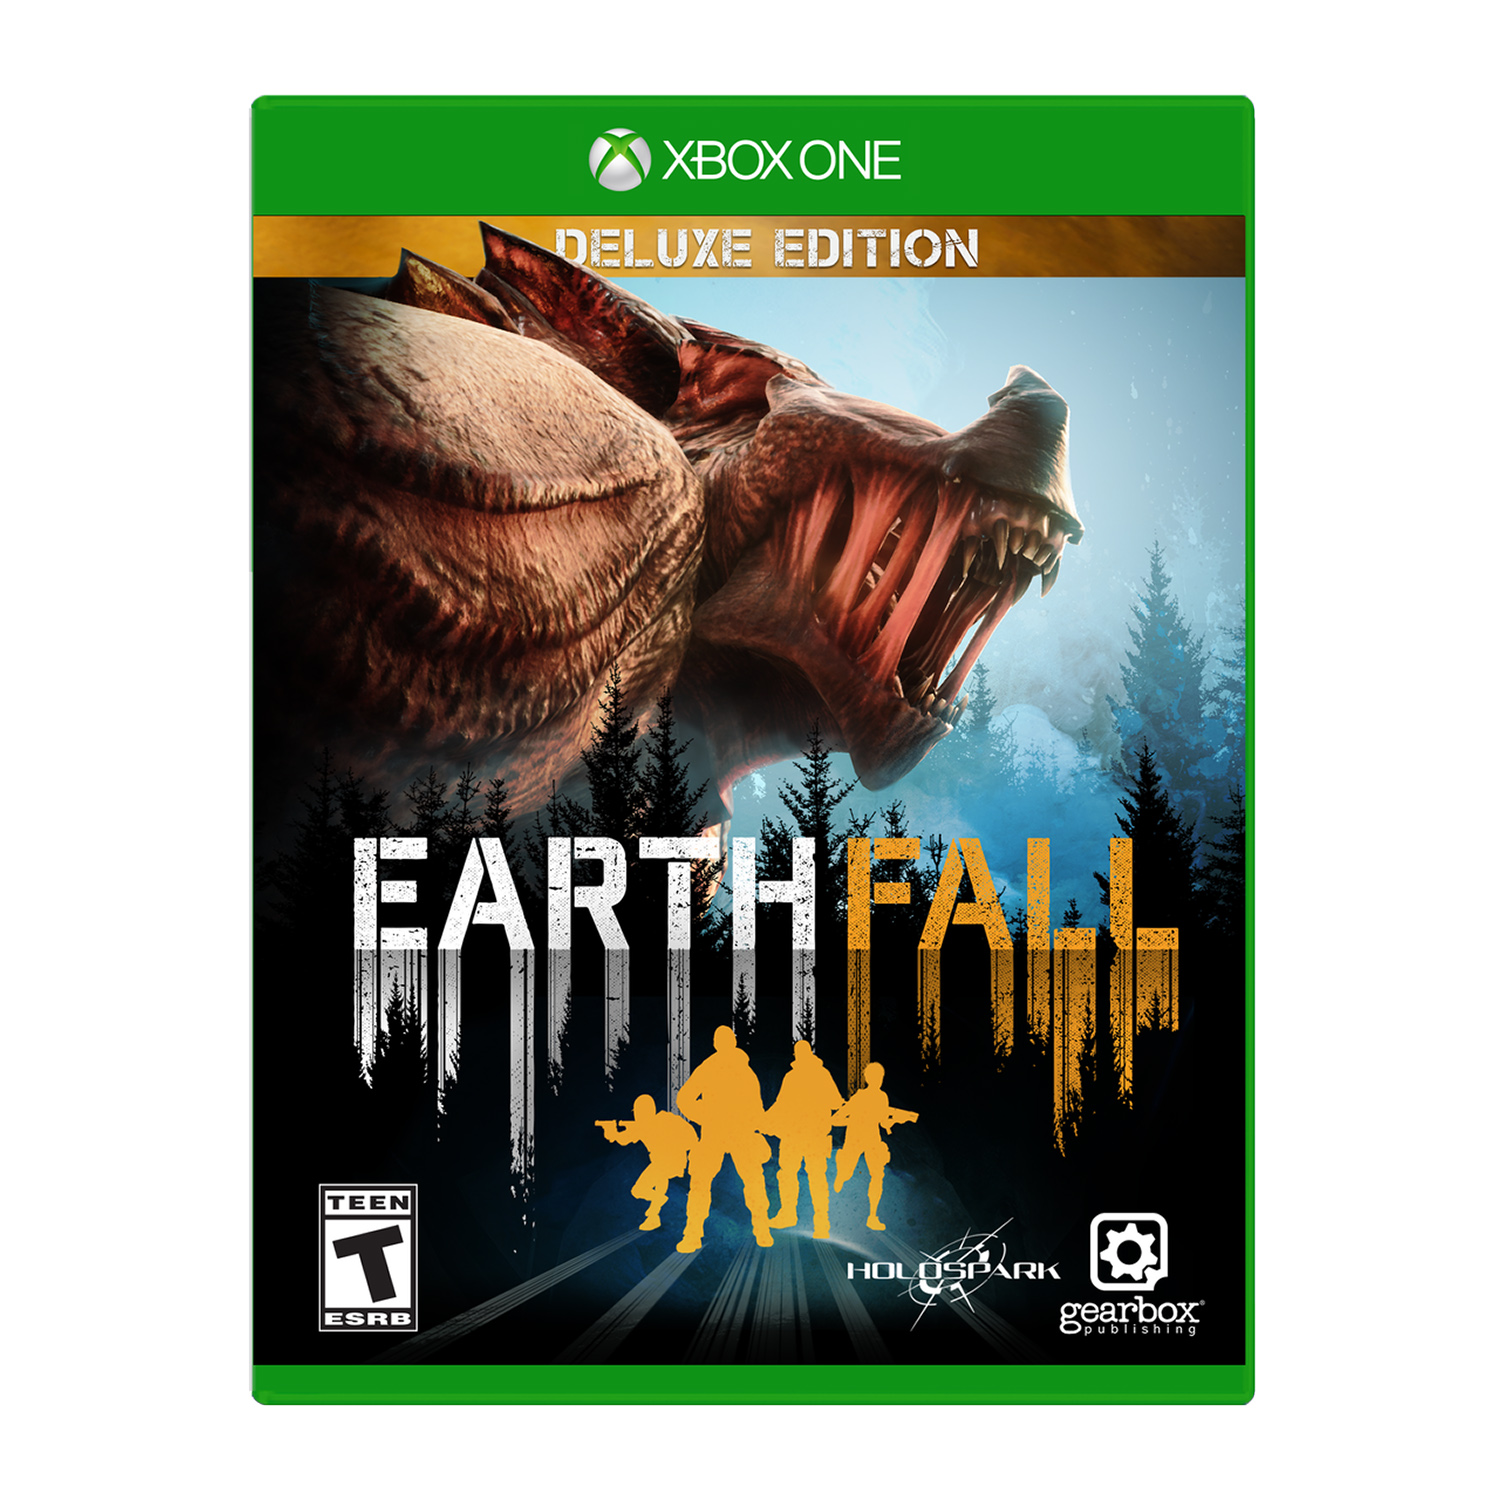 Earthfall Deluxe Edition, Gearbox, Xbox One, 850942007533